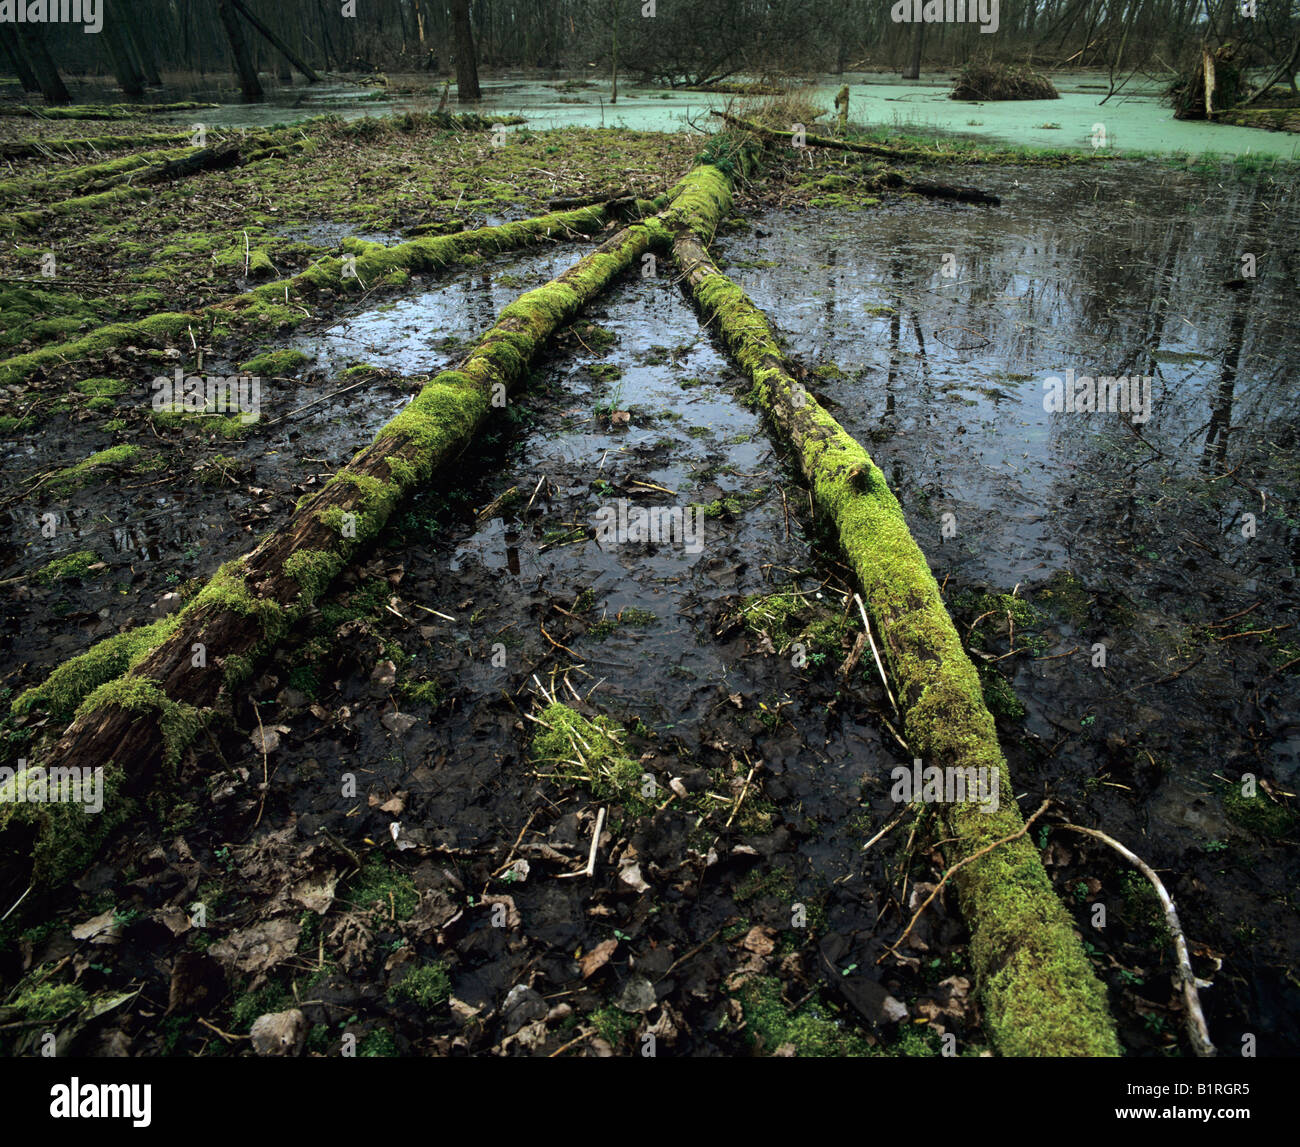 Habitat, wetland with moss-covered deadwood, thick duckweed carpet at back Stock Photo